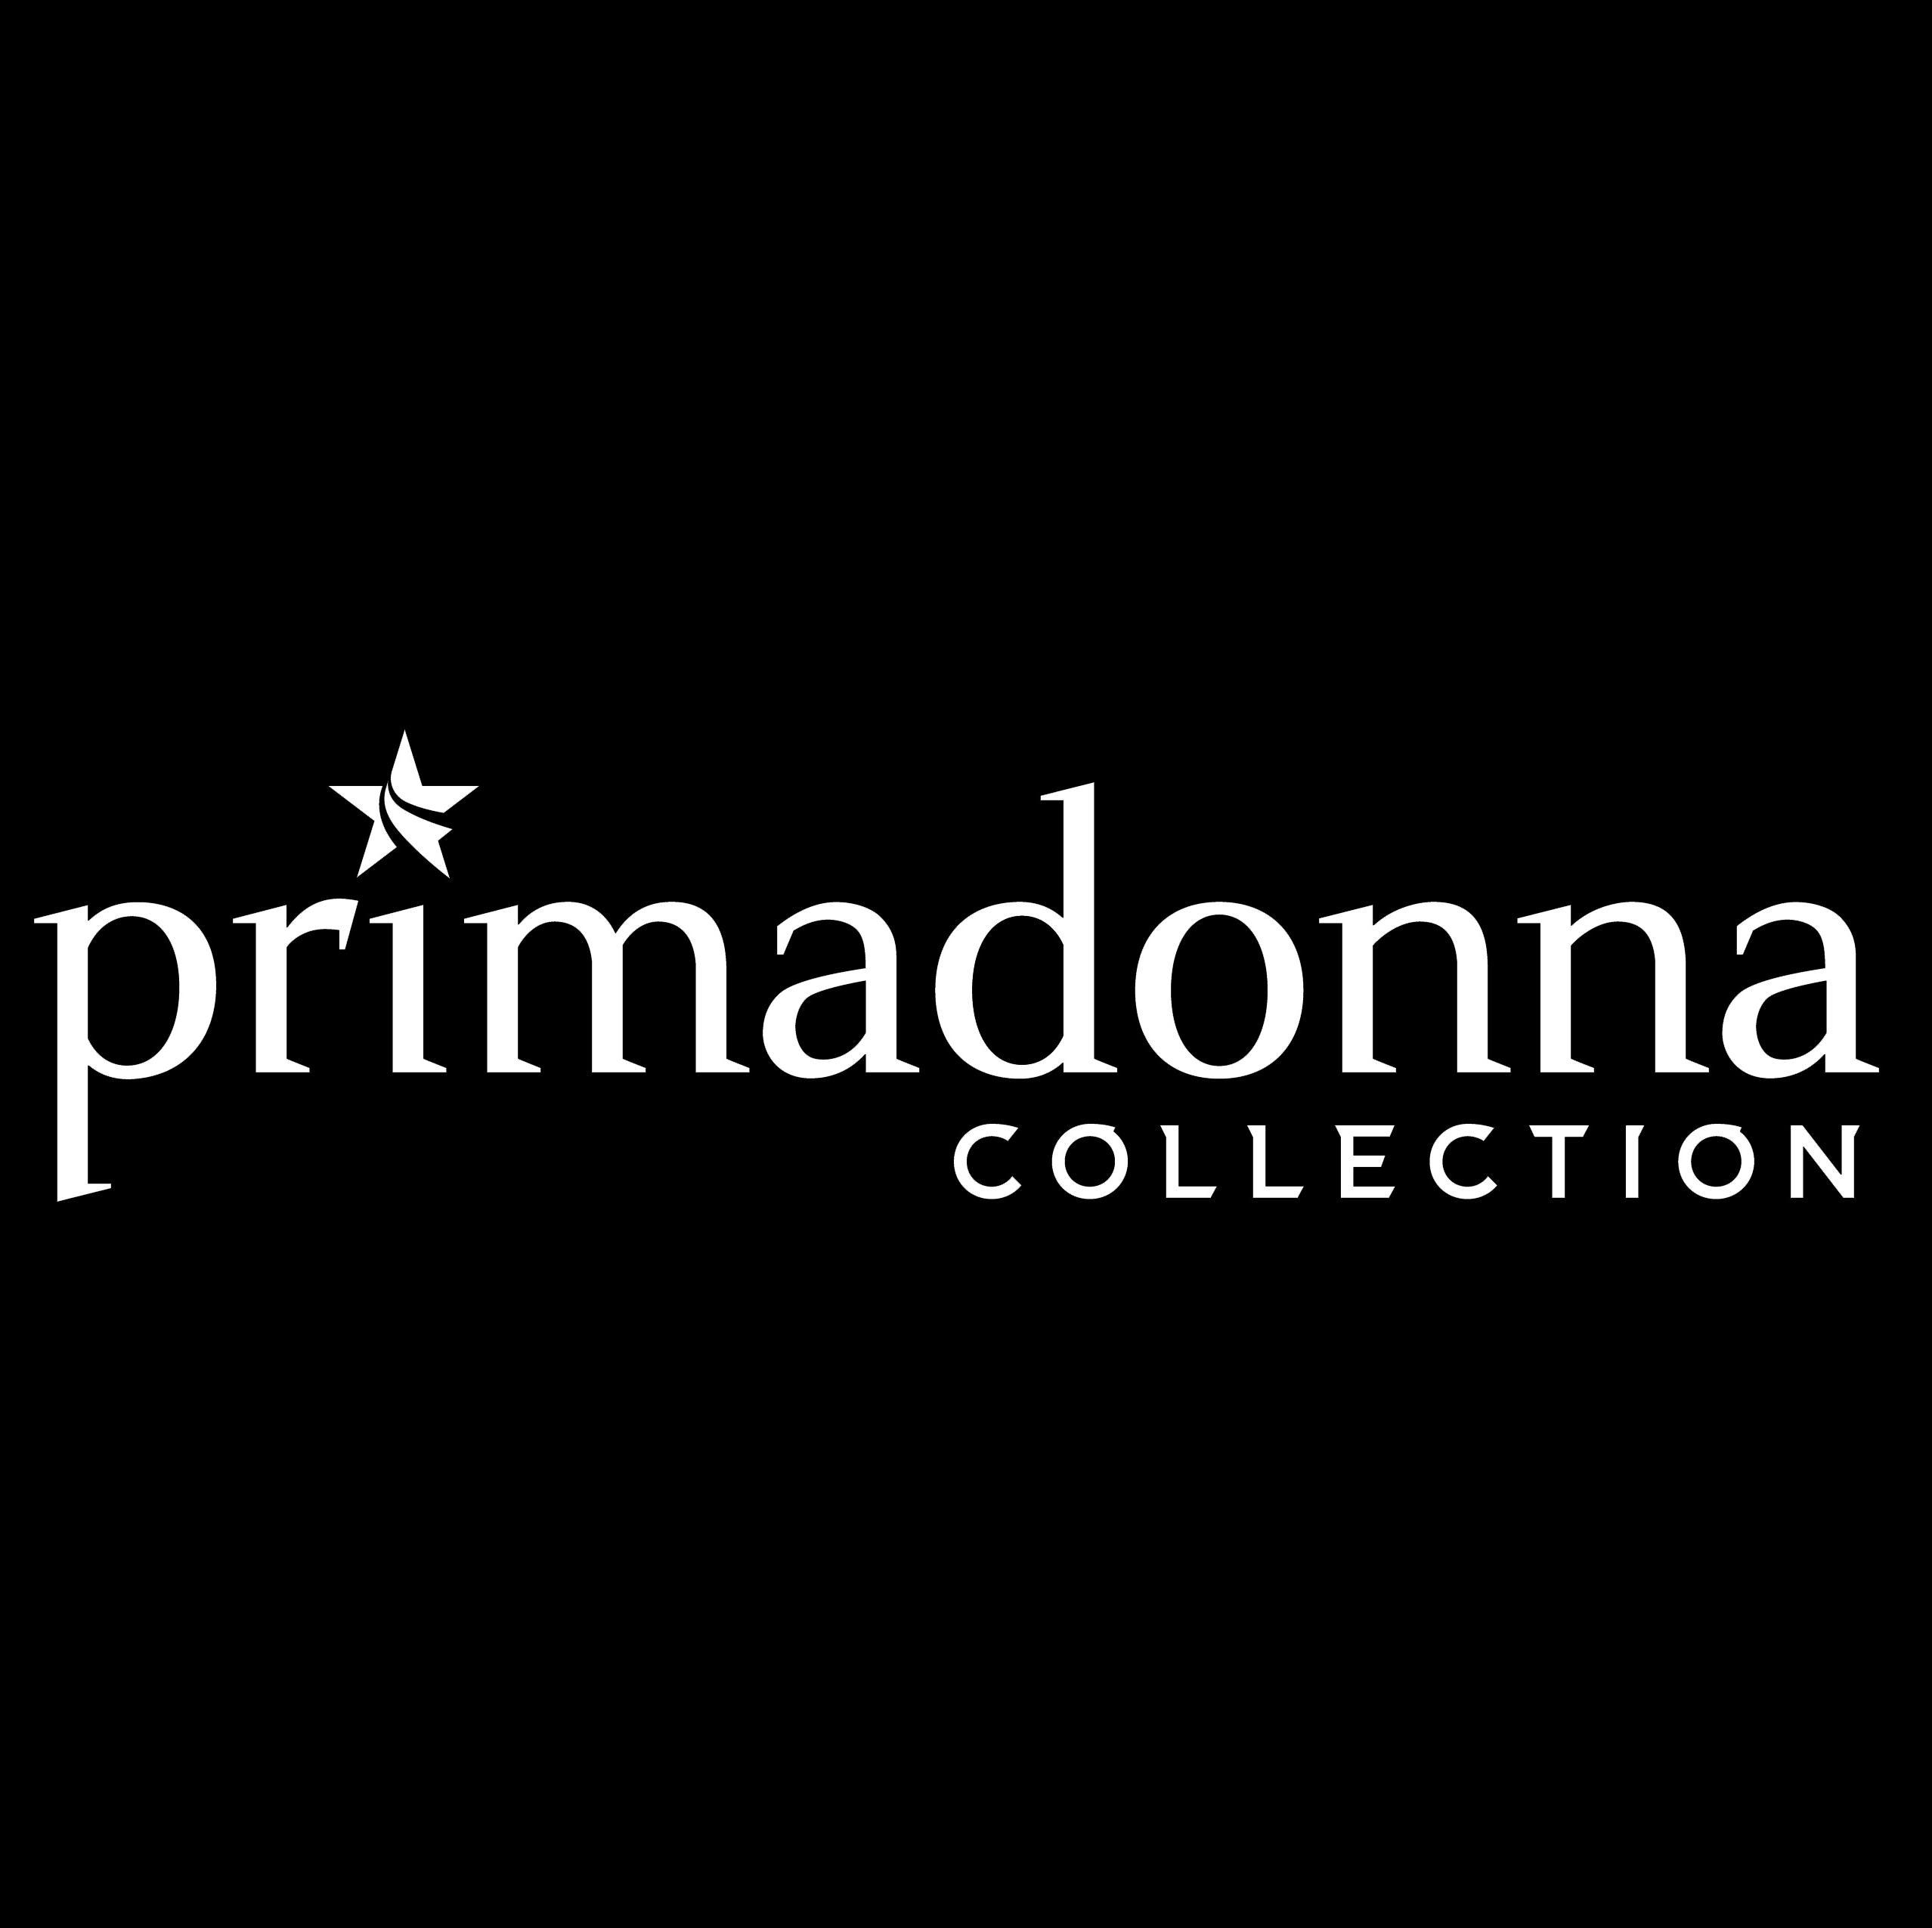 PrimadonnaCollection